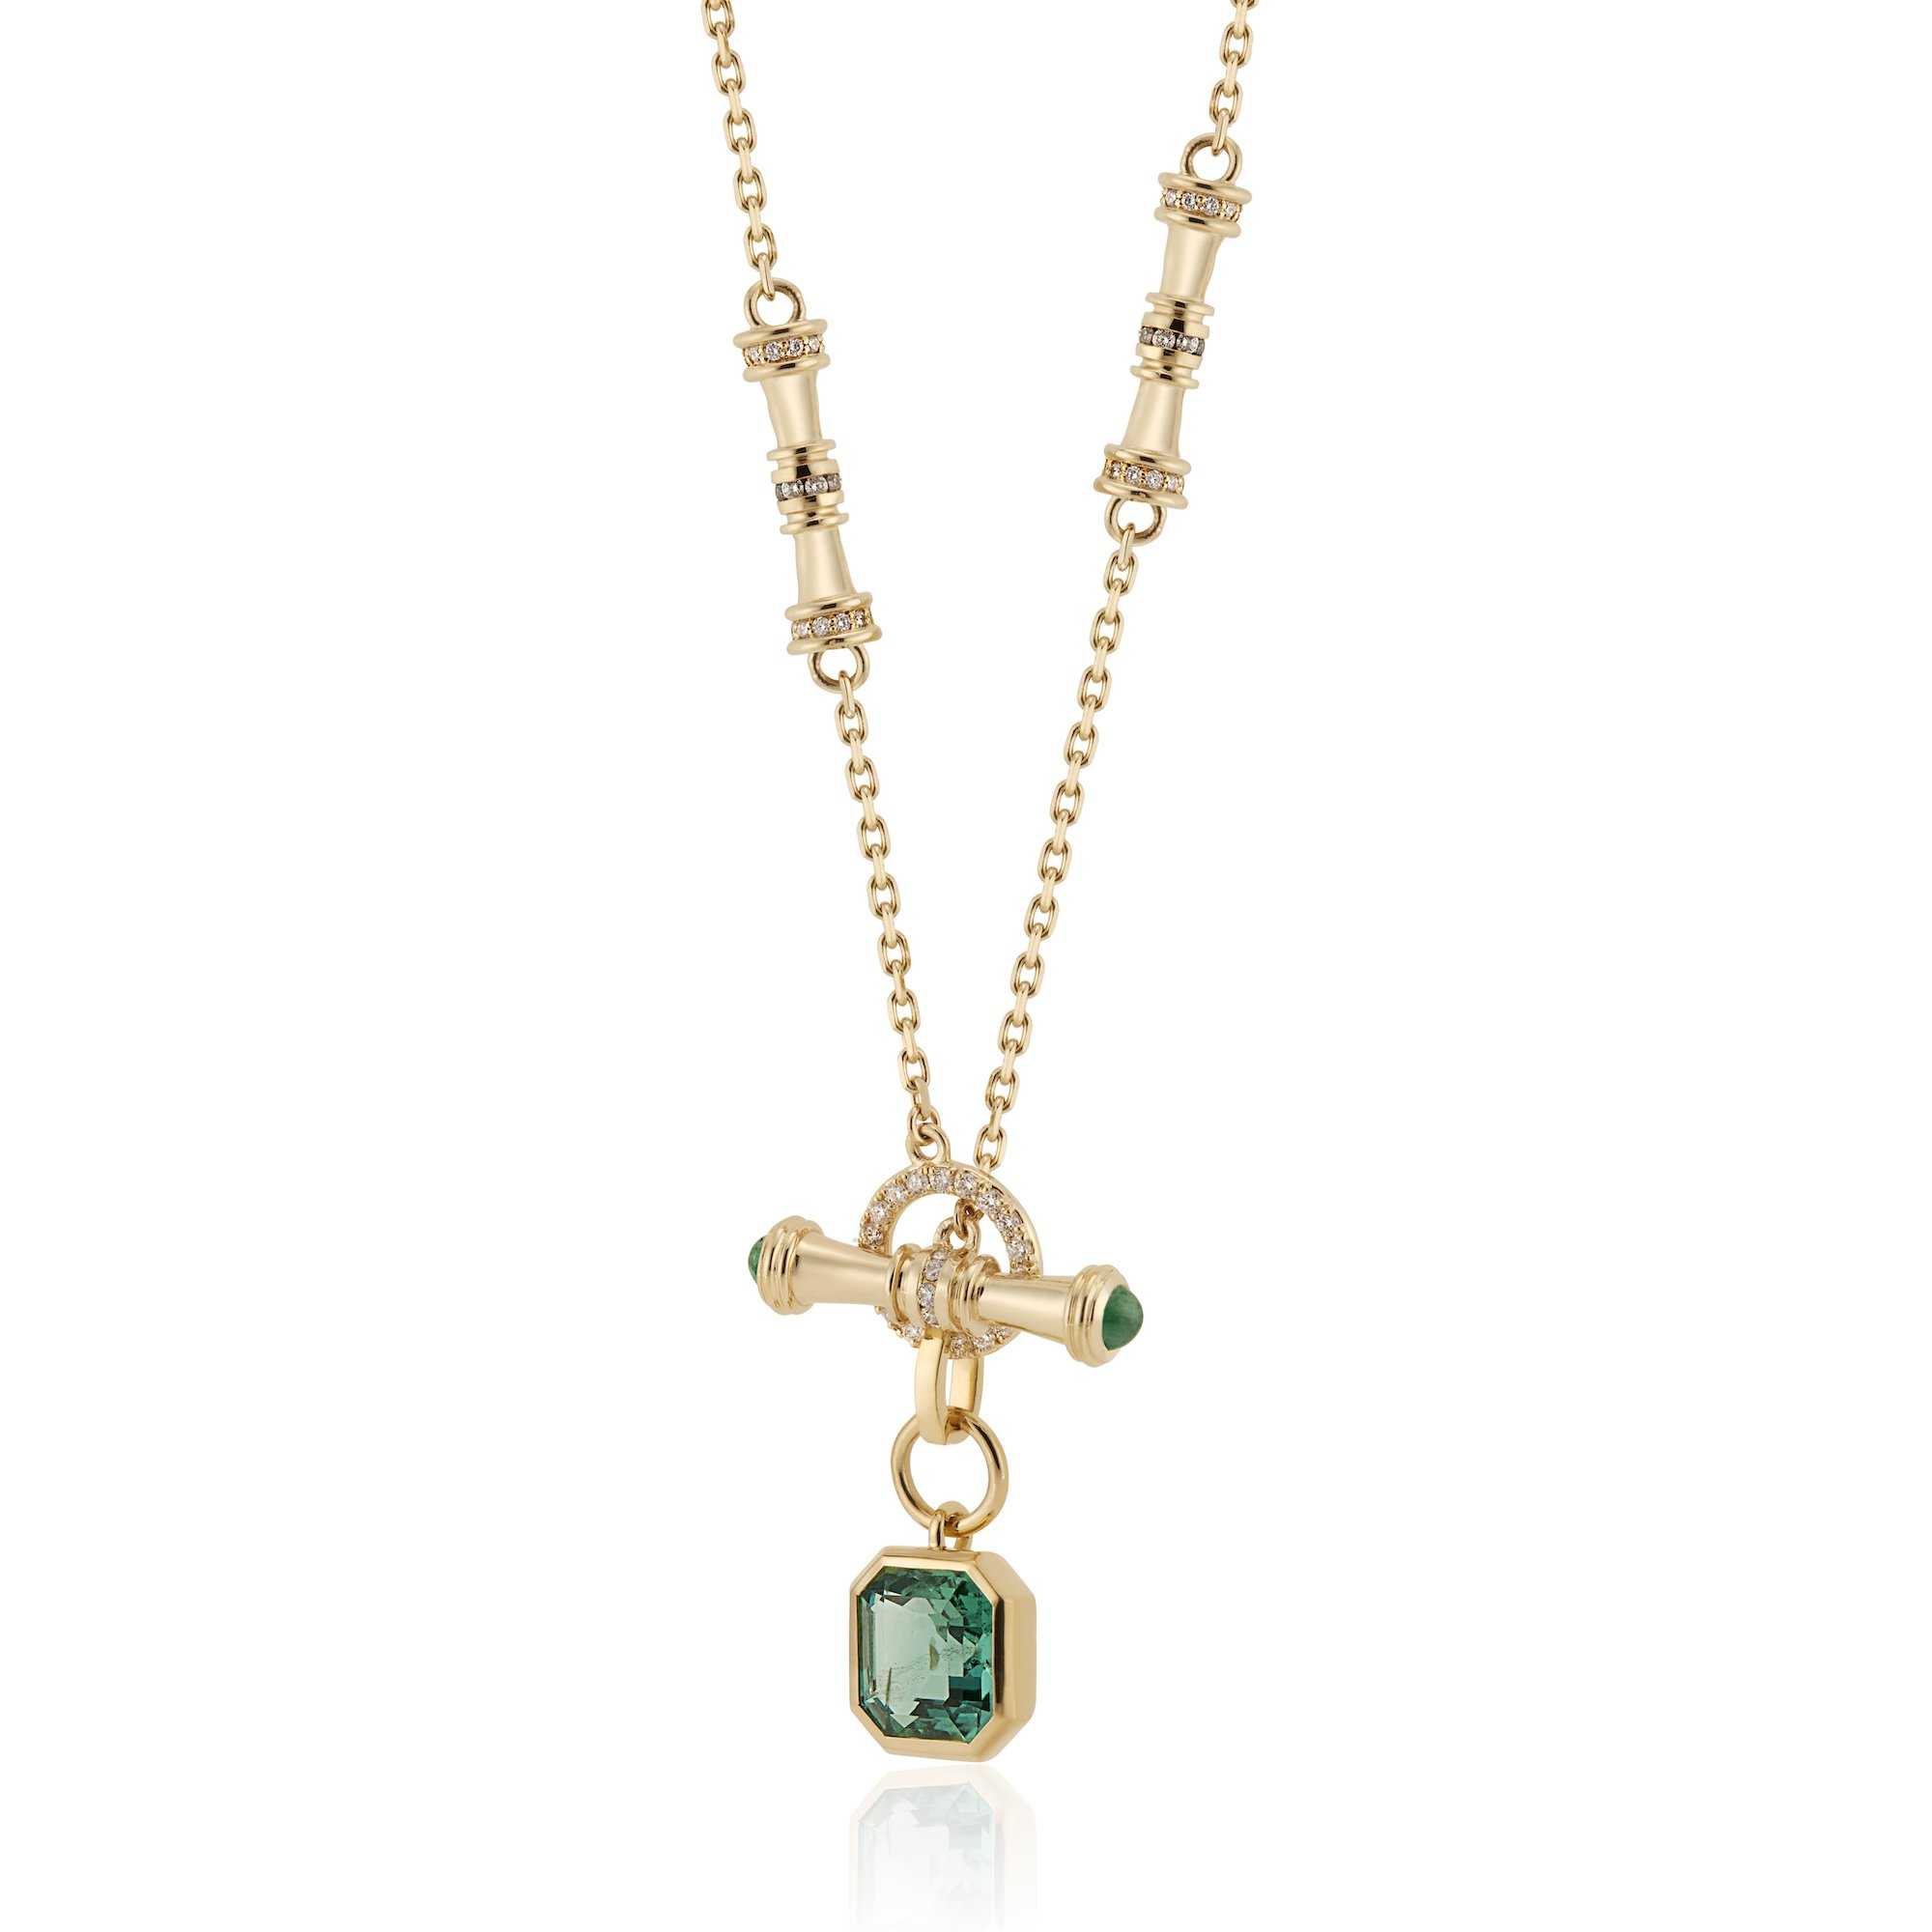 Voluta Chain with Emerald Drop, Contact Us